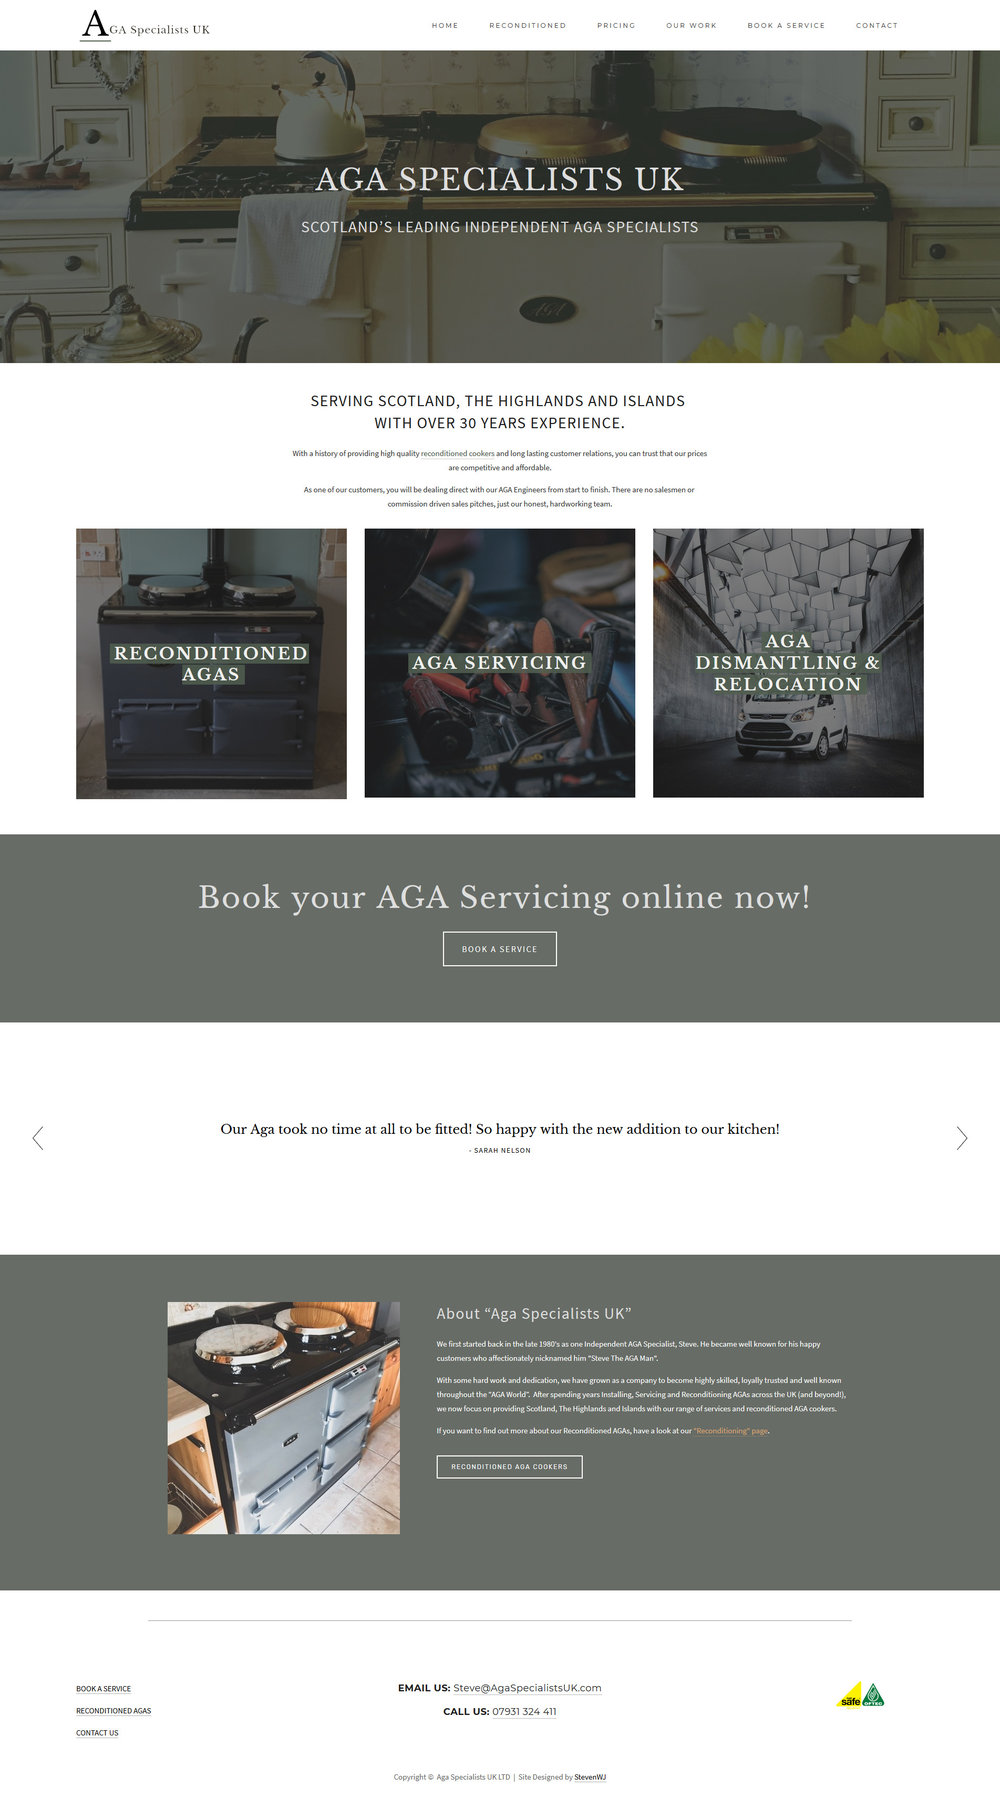 AGA-Specialists-UK-Squarespace-Site-Redesign.jpg